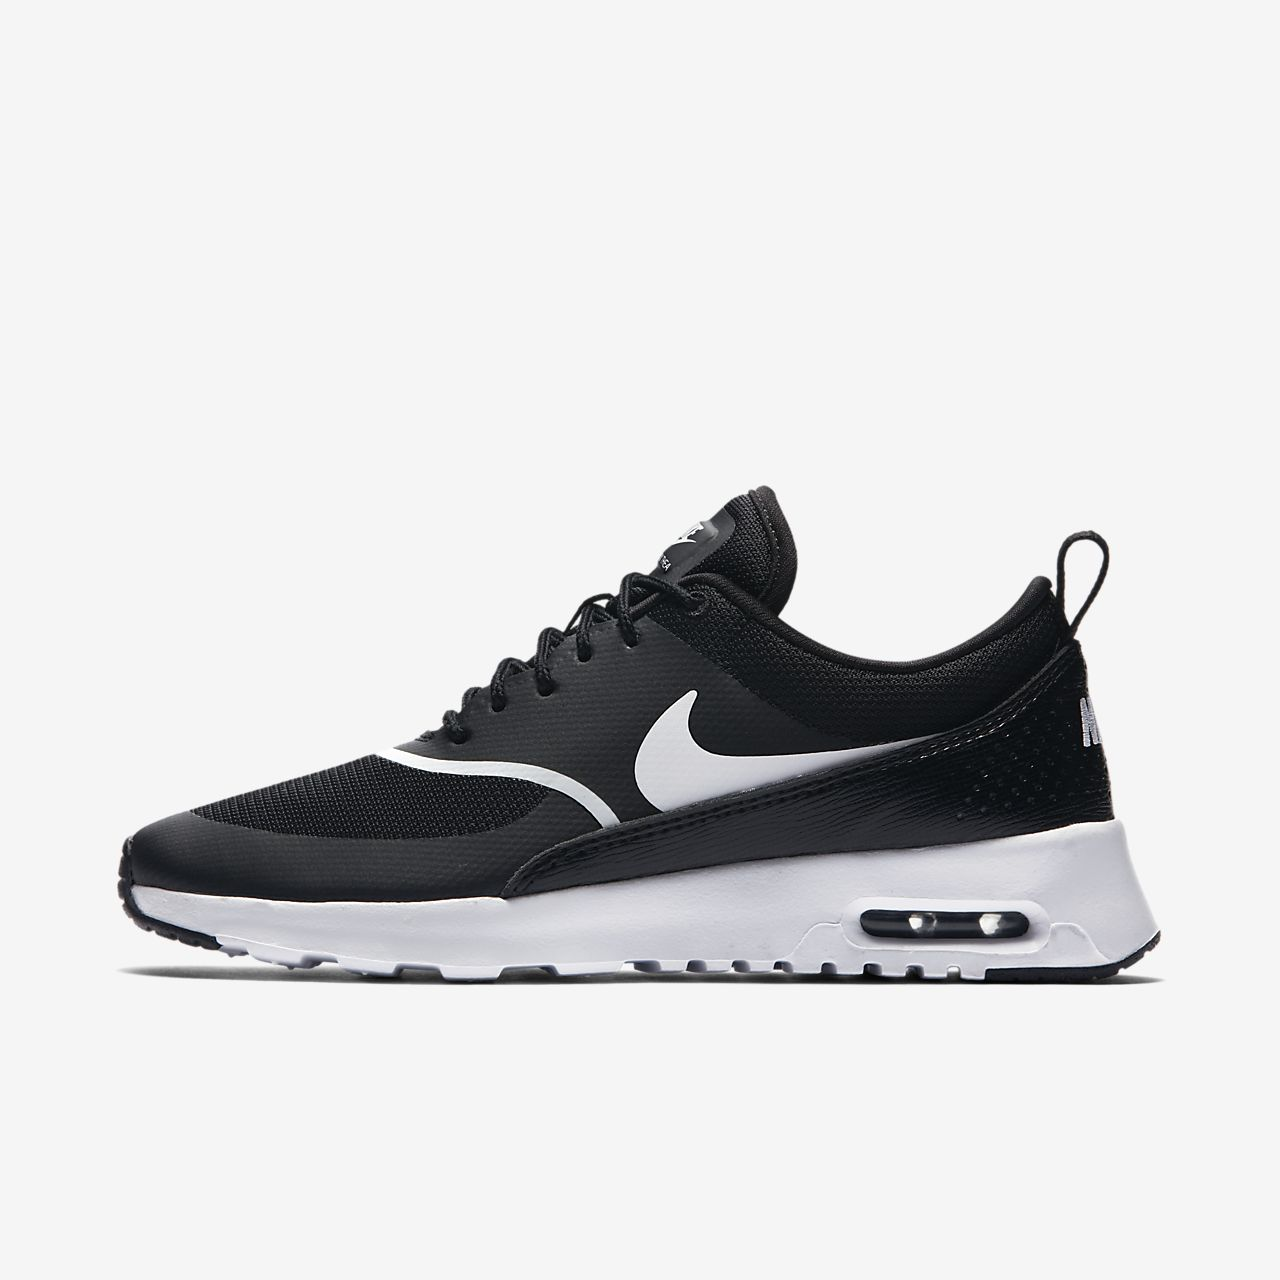 sports shoes 498ae e7659 ... Nike Air Max Thea Womens Shoe